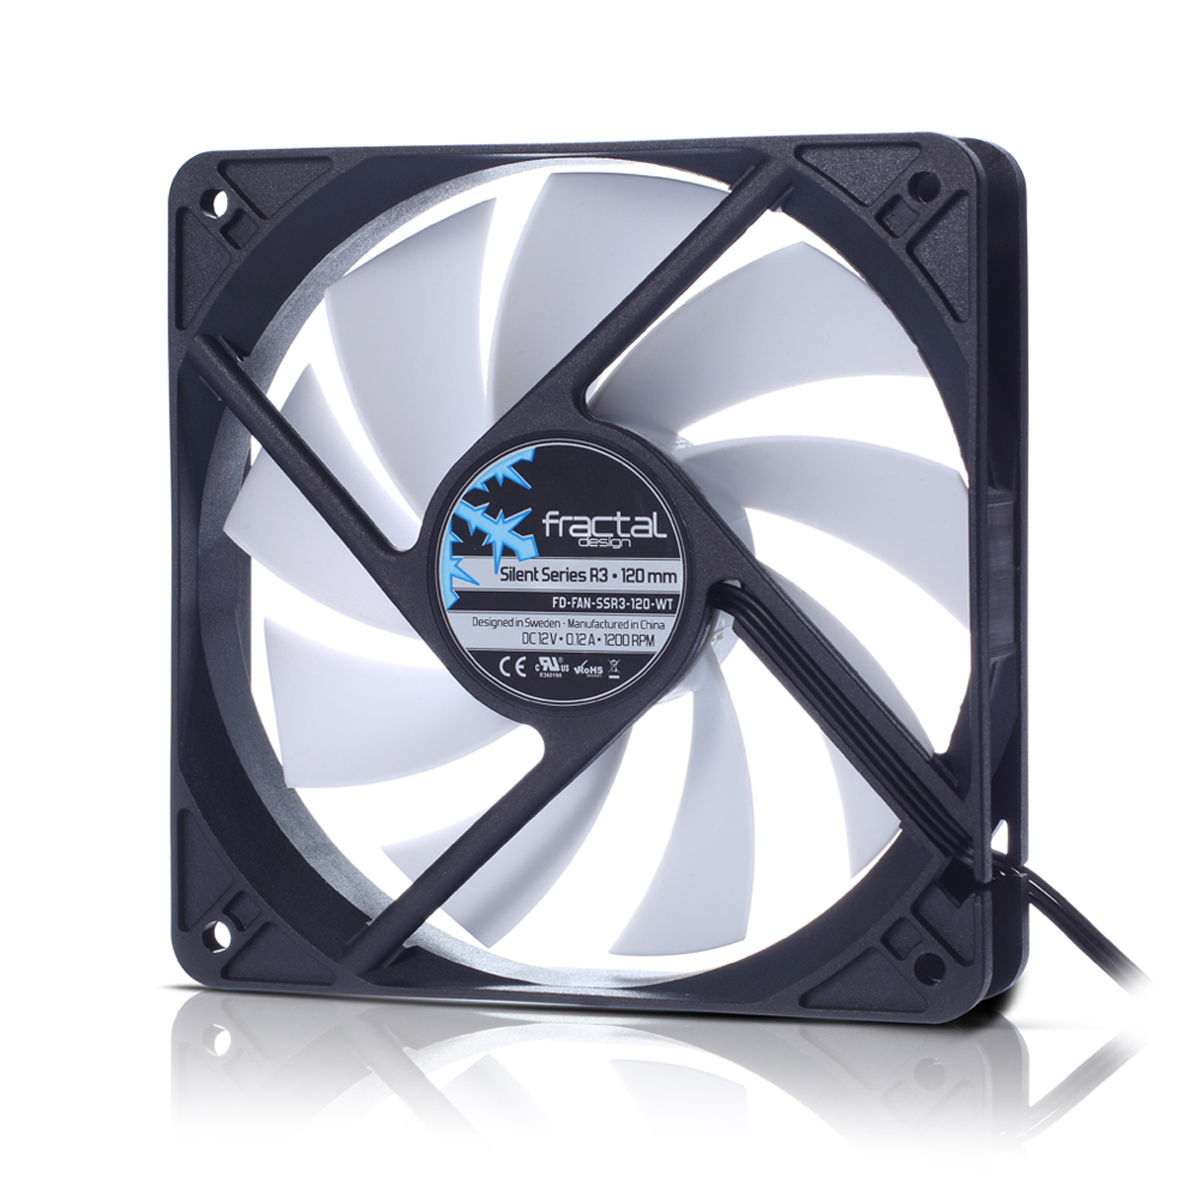 FD-FAN-SSR3-120-WT Fractal Design Silent Series R3 120 mm Computer case Fan - Ent01